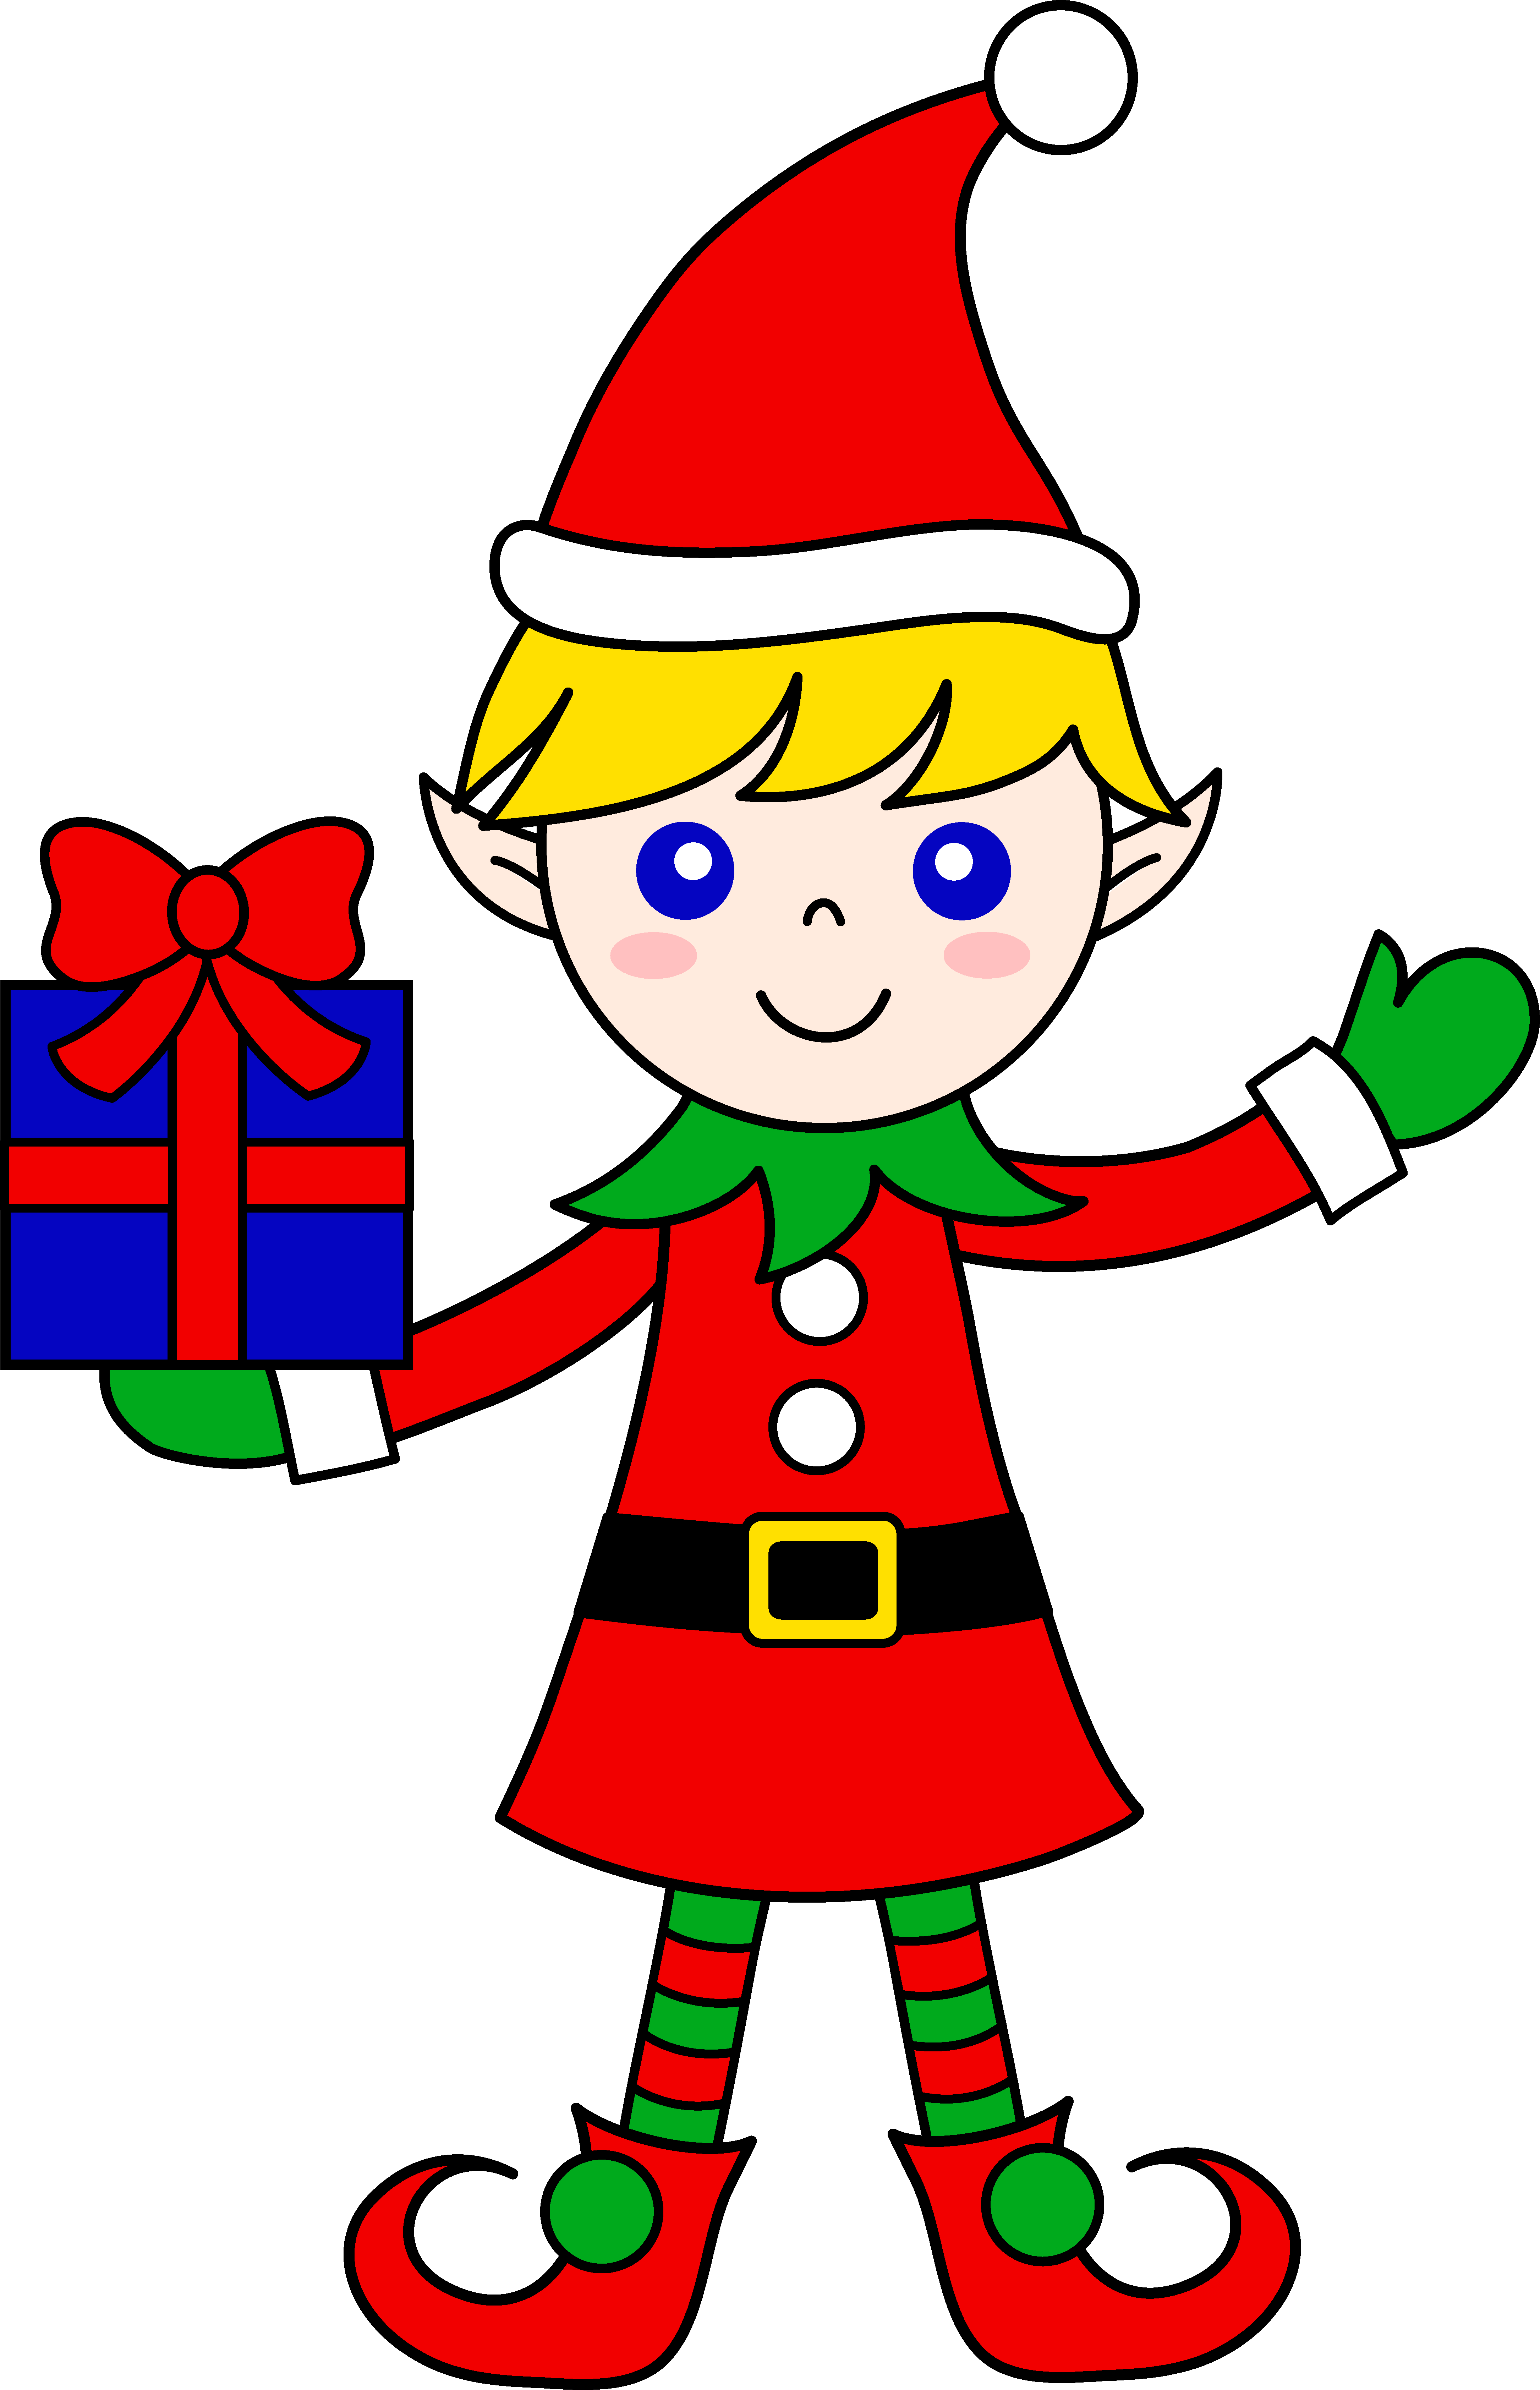 Images of christmas elves. Lunch clipart movie